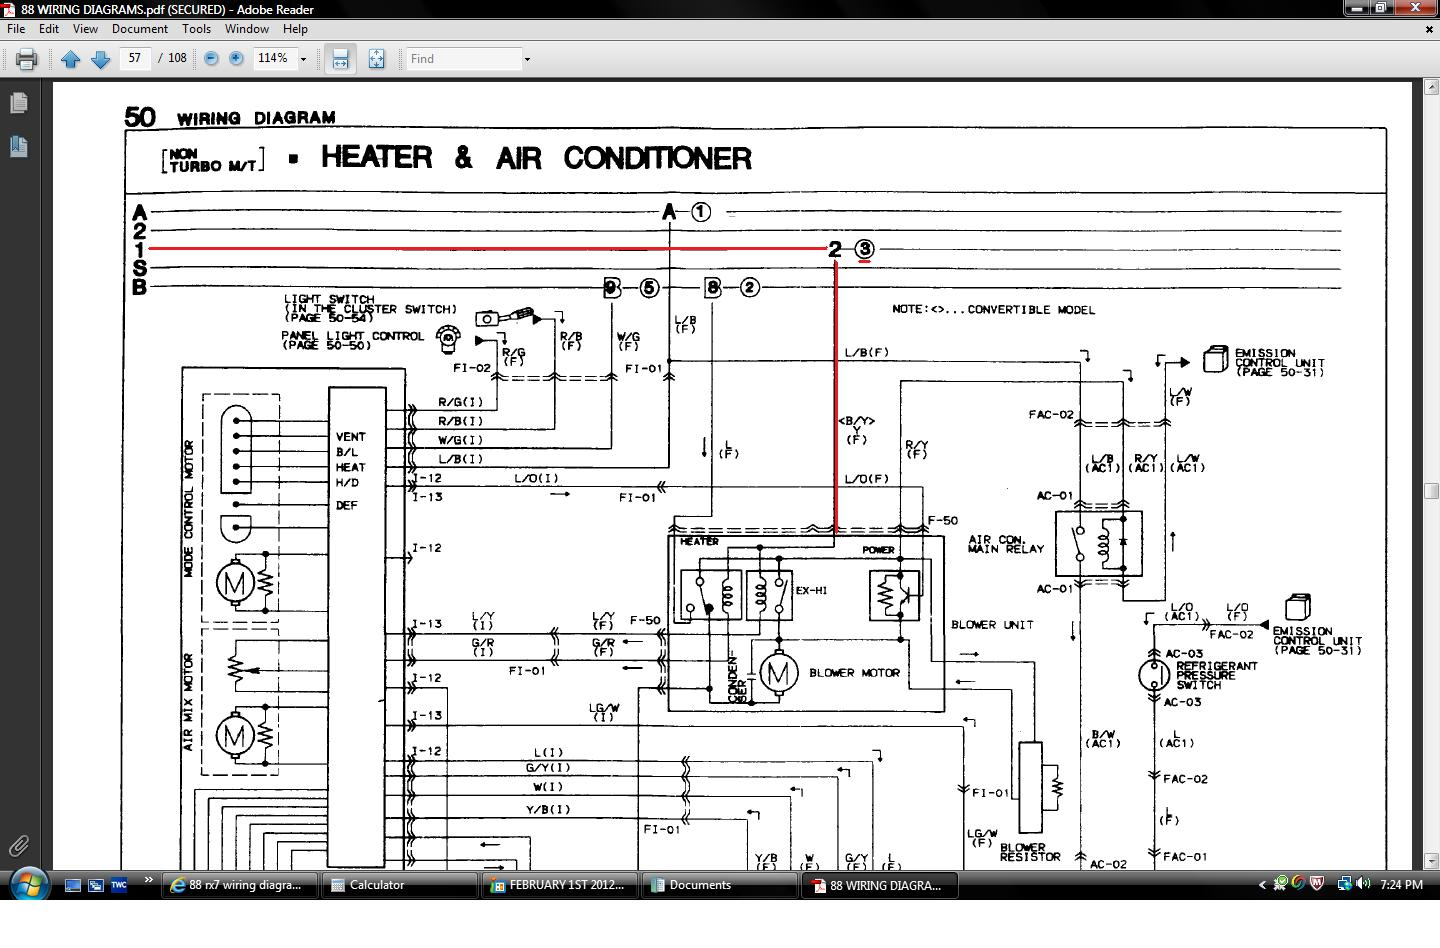 hight resolution of 88 rx7 wiring diagram rx7club com mazda rx7 forum rh rx7club com 2016 mazda wiring diagrams